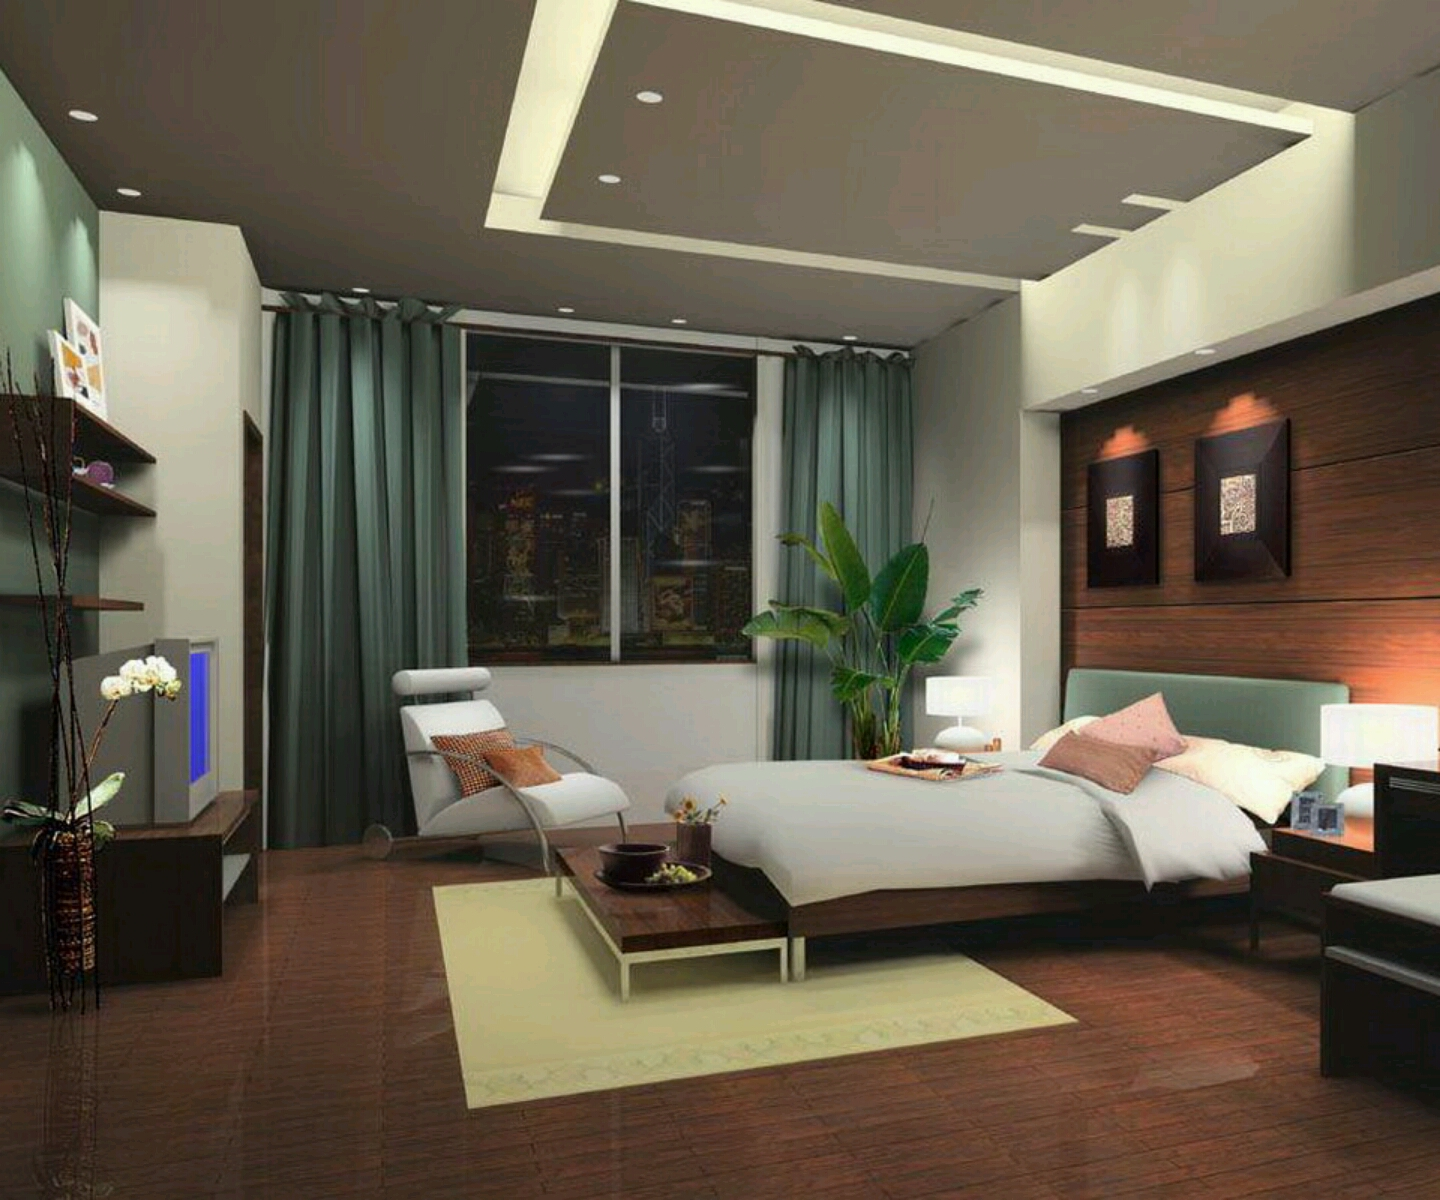 New home designs latest modern bedrooms designs best ideas for Bedroom layout ideas